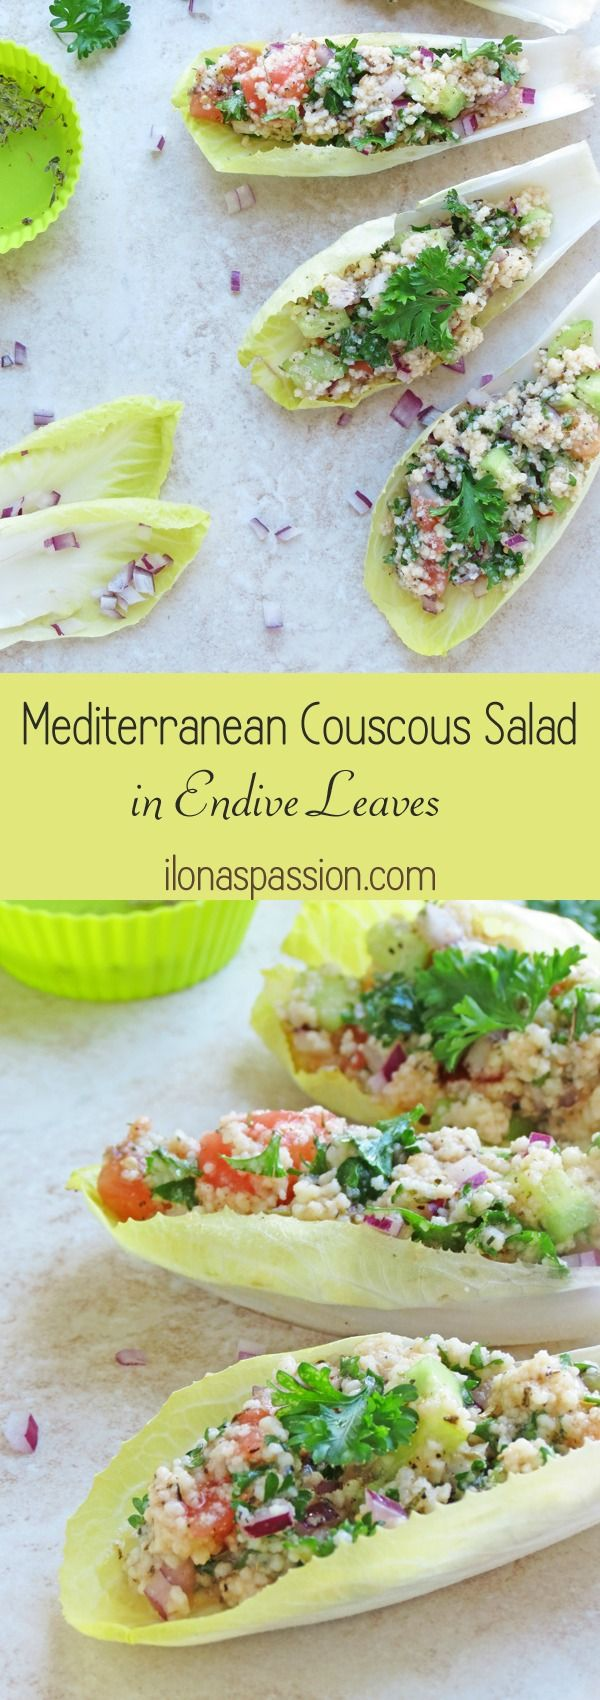 Delicious, full of flavor and healthy Mediterranean Couscous Salad Recipe stuffed in endive leaves #salad #couscous #Mediterranean